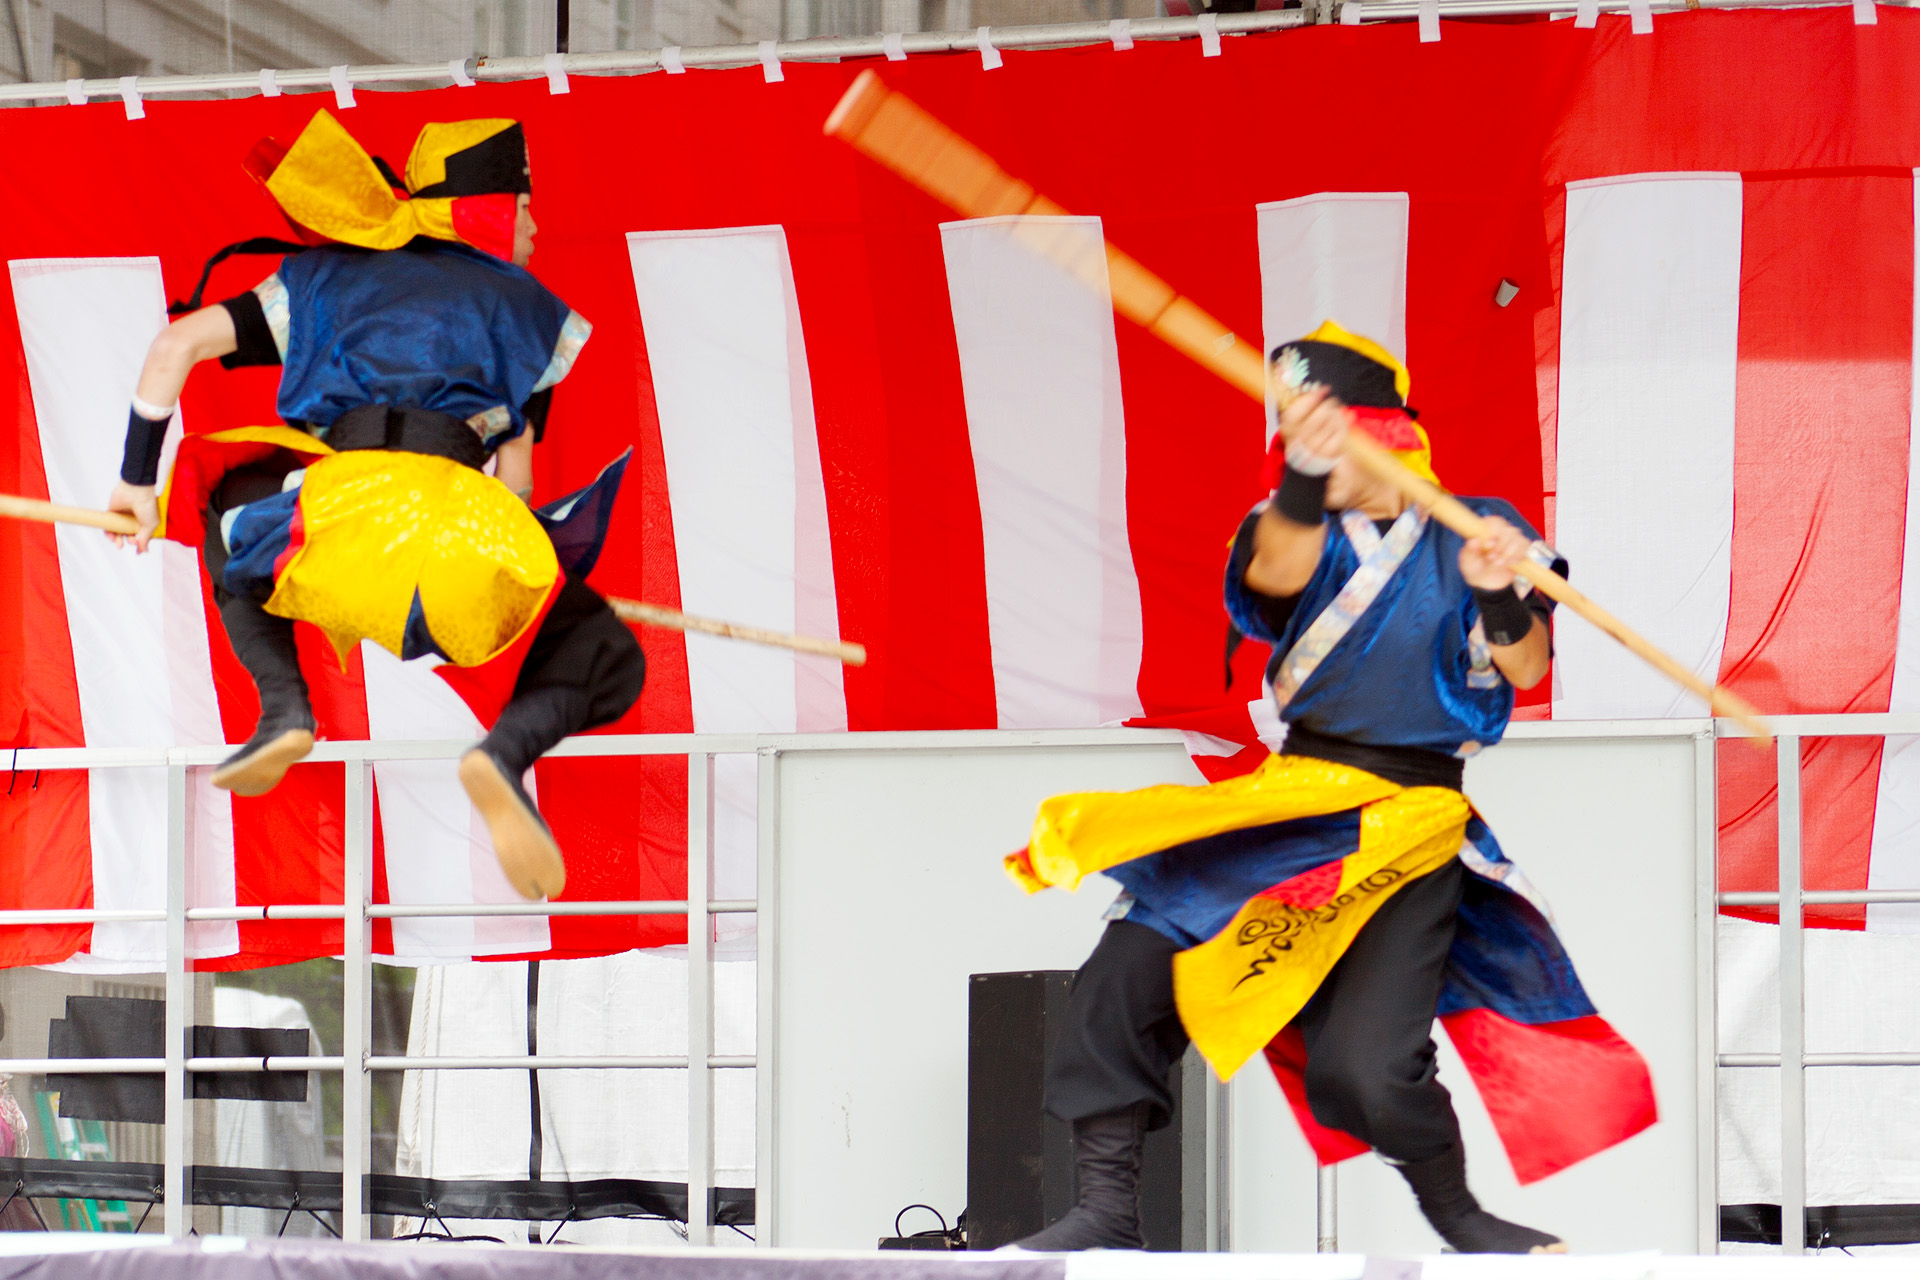 Fighting demo, Matsuri Festival.